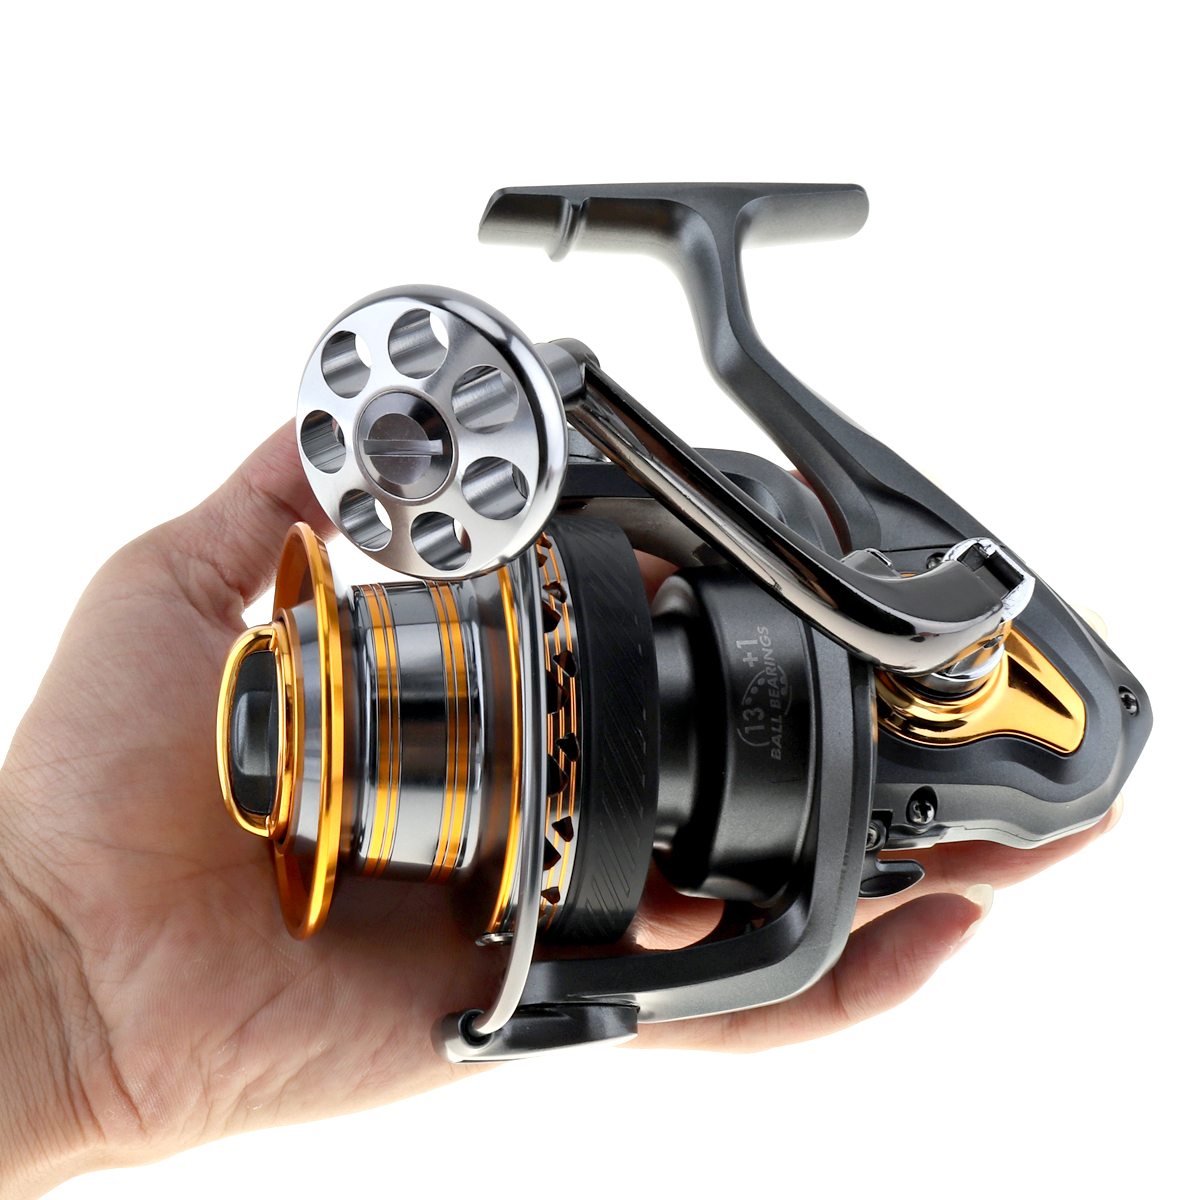 FDDL Aluminum Spool Spinning Fishing Reel 6000/7000 Series 13+1 Ball Bearings Long Distance Surfcasting Reel with Metal Handle<br>